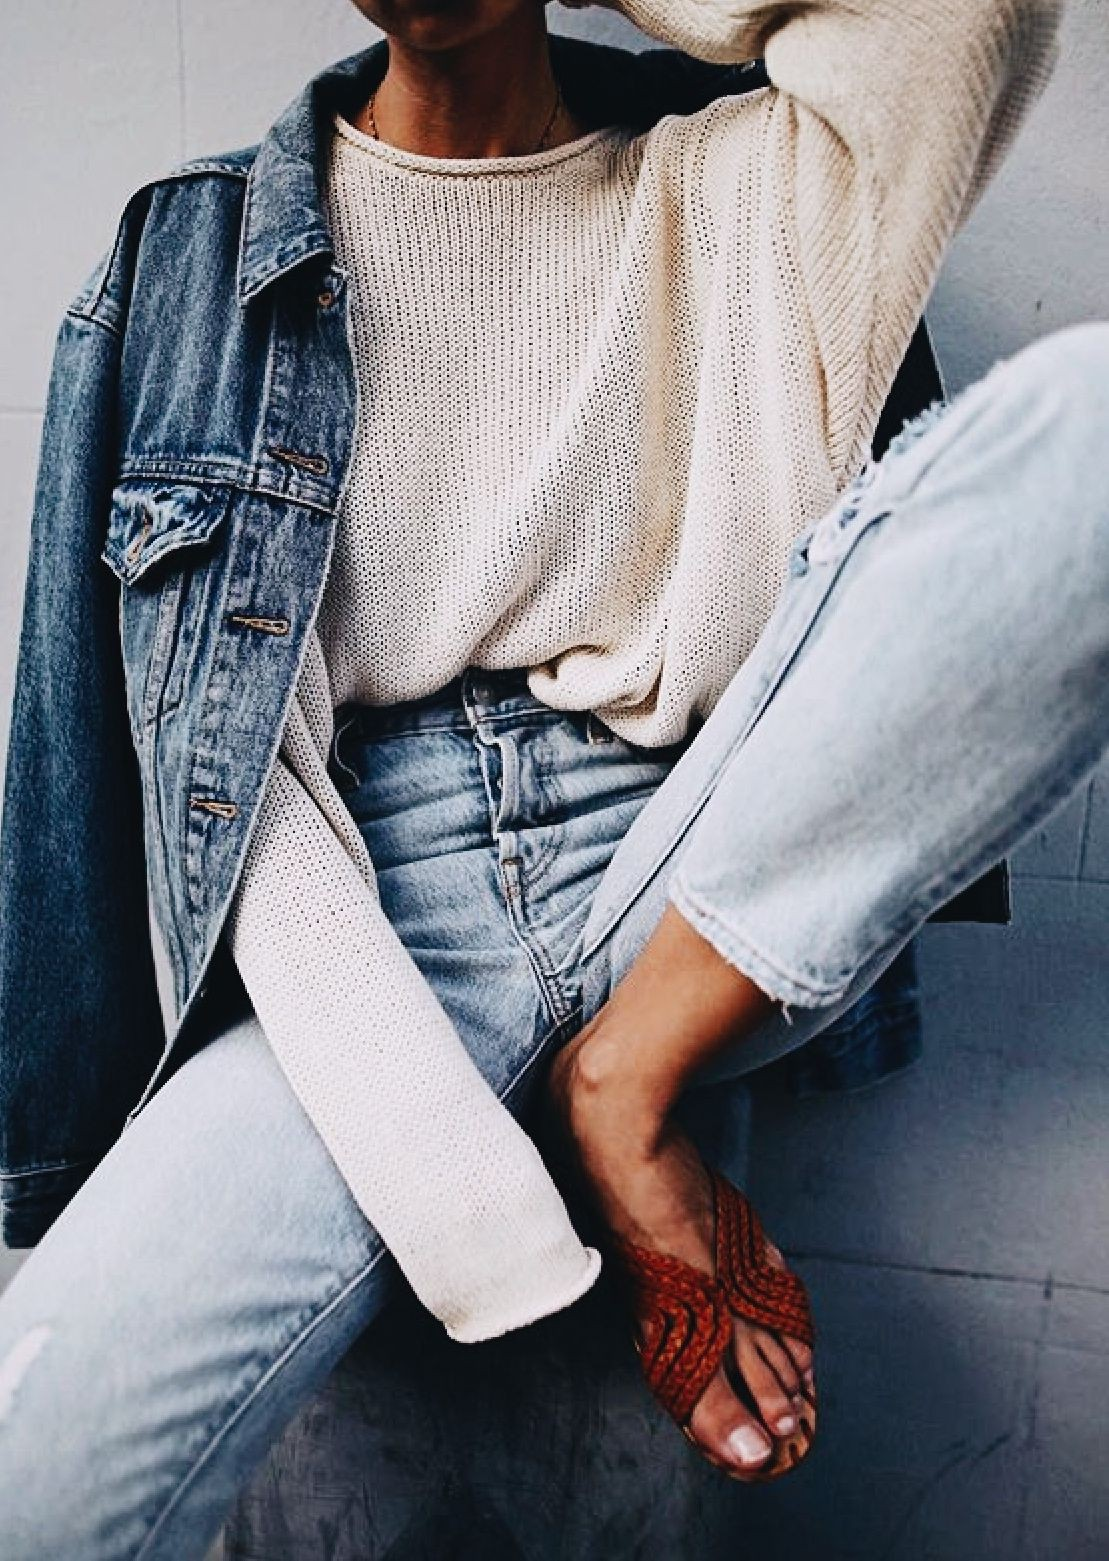 Clothing ideas with jean jacket, trousers, jacket